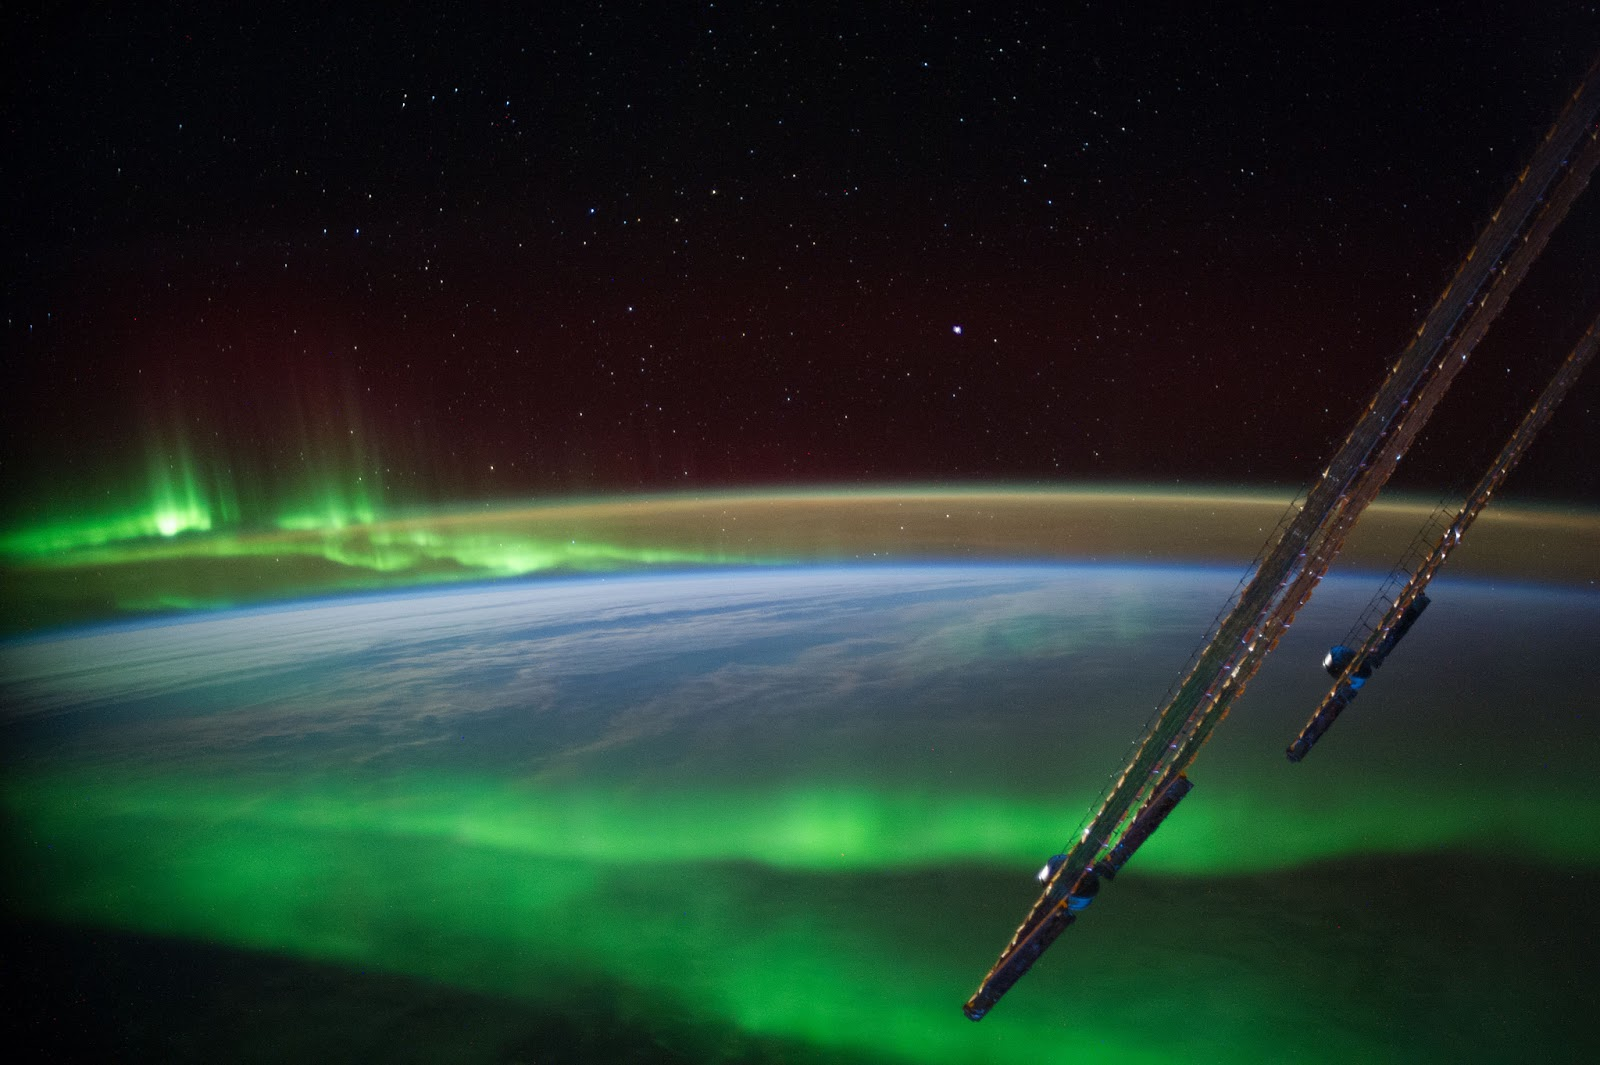 Aurora Australis Aurora Australis   One of the more spectacular scenes of the aurora australis was photographed by one of the Expedition 40 crew members aboard the International Space Station from an altitude of approximately 223 nautical miles  Image Credit: NASA